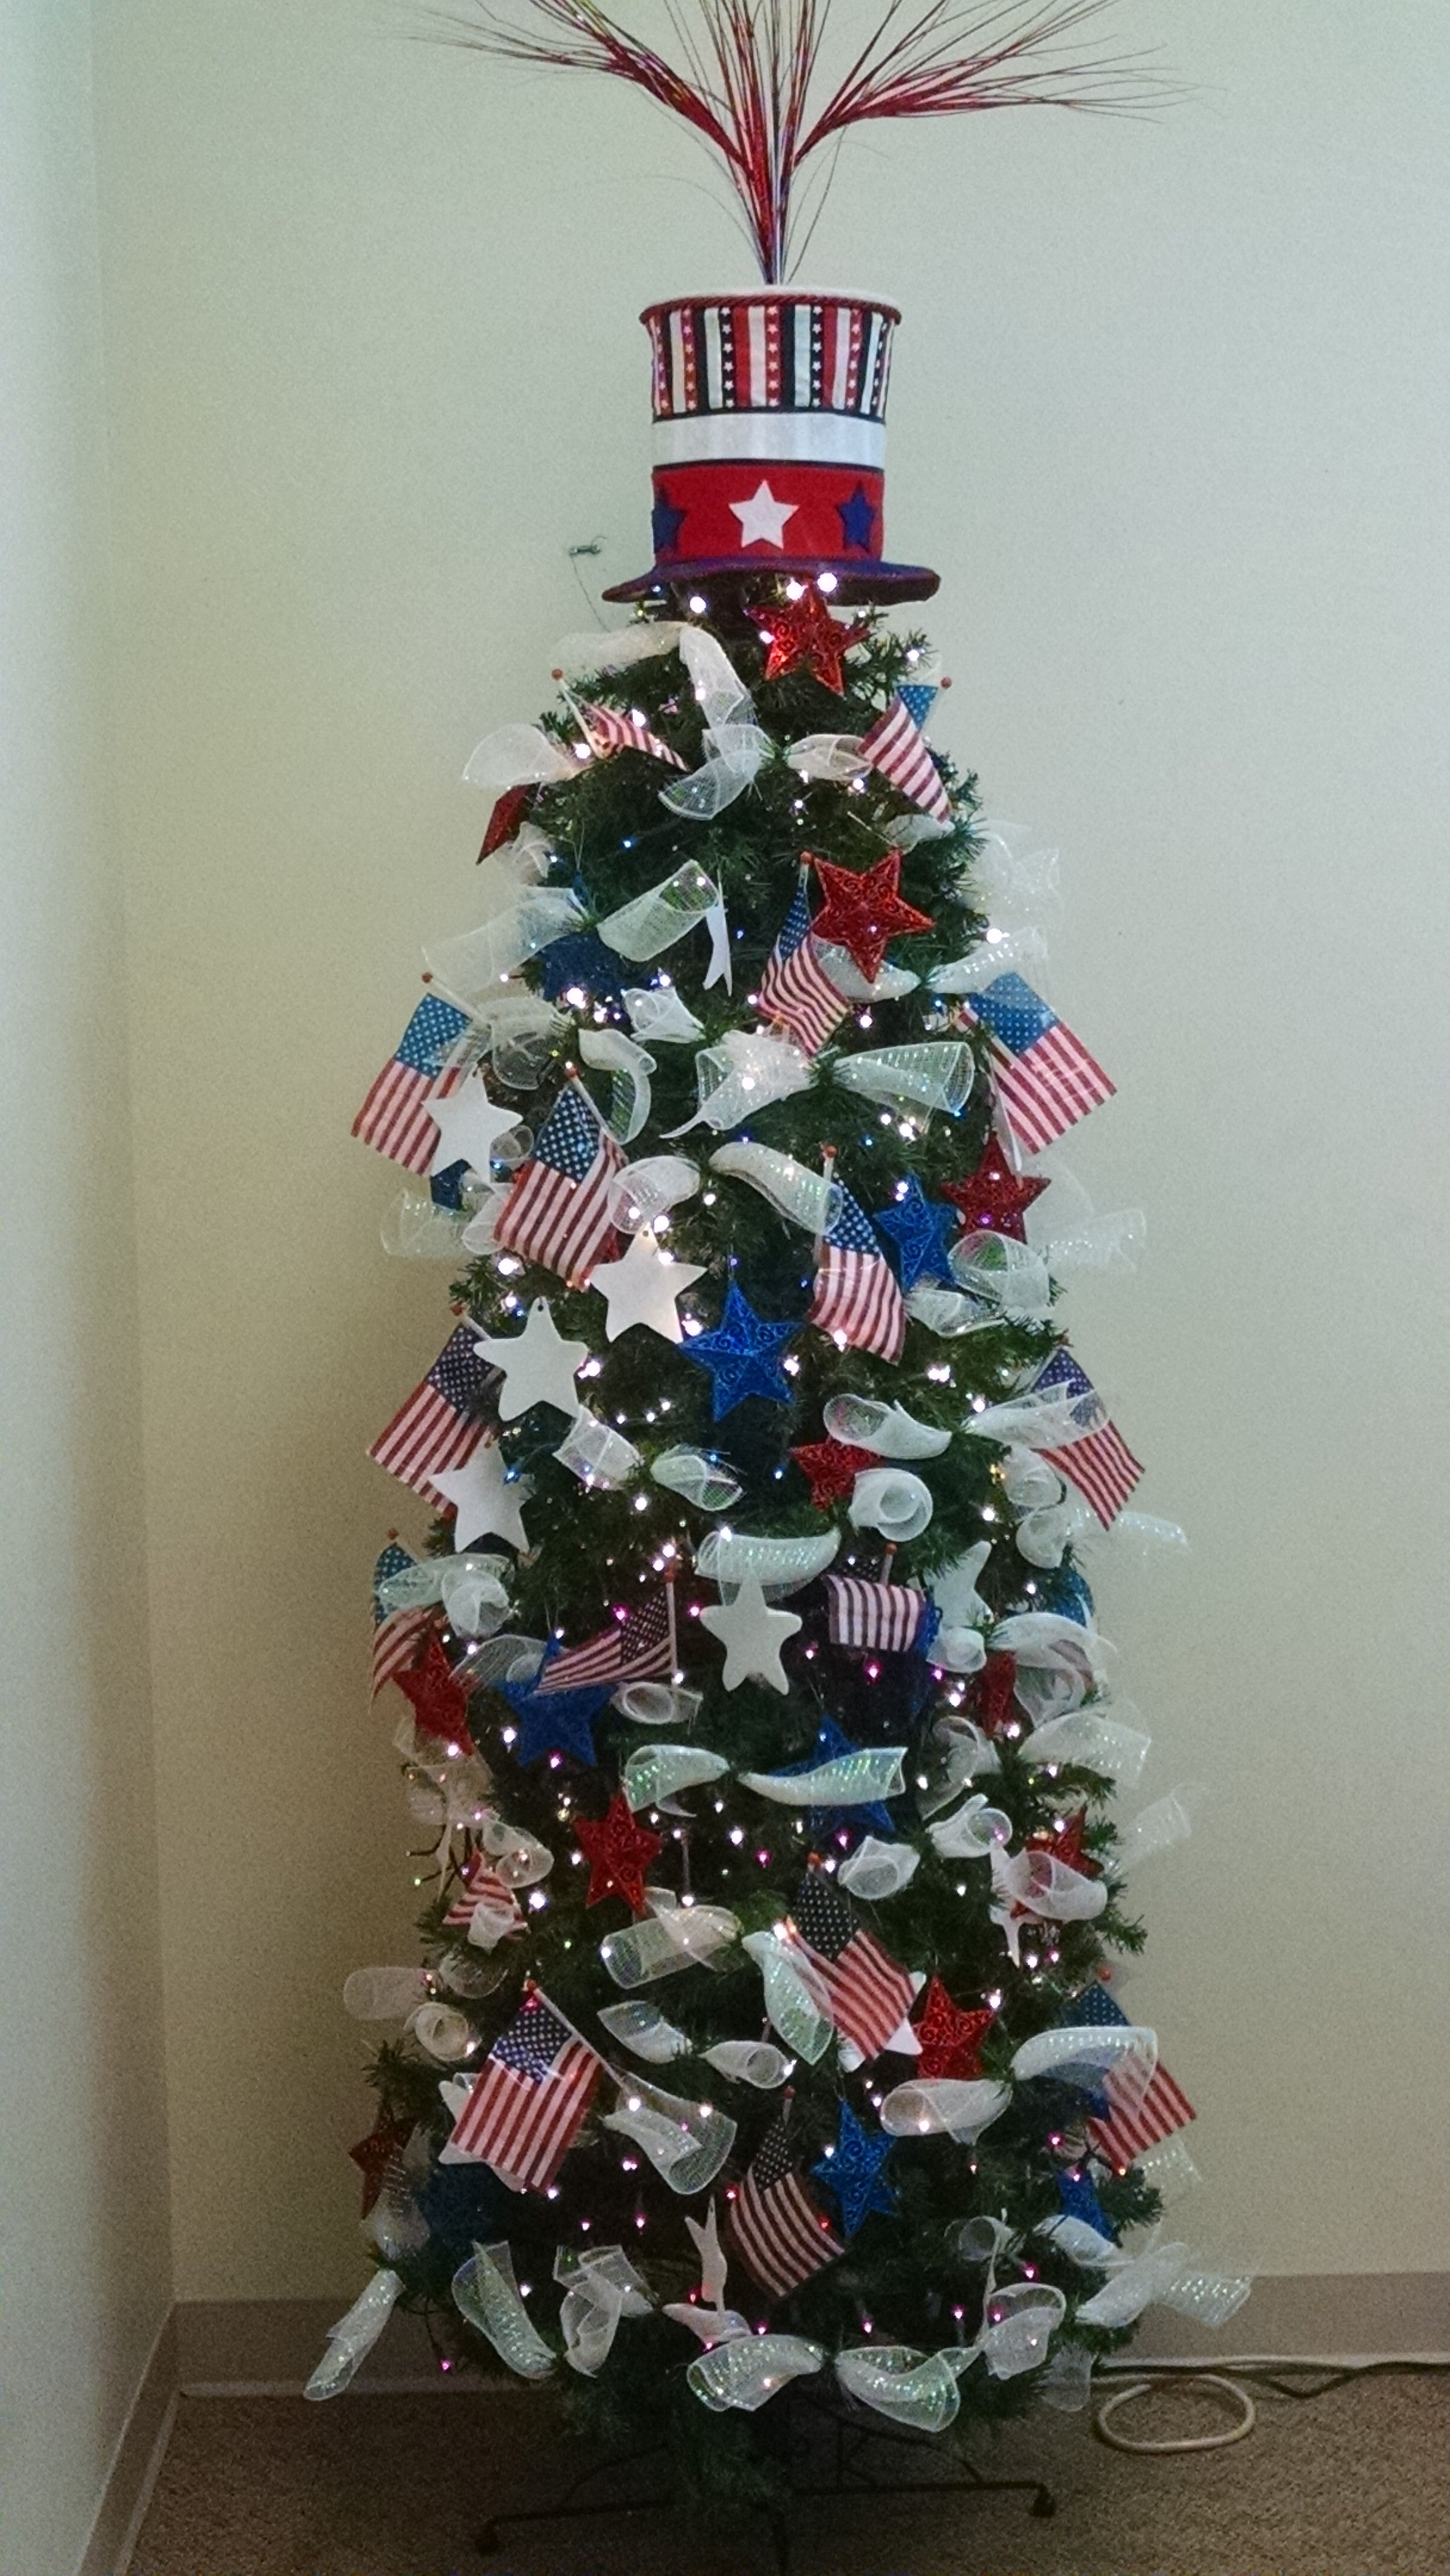 2017 America The Beautiful Tree 4th Of July Patriotic Christmas Tree Holiday Tree Decorations Unique Christmas Trees